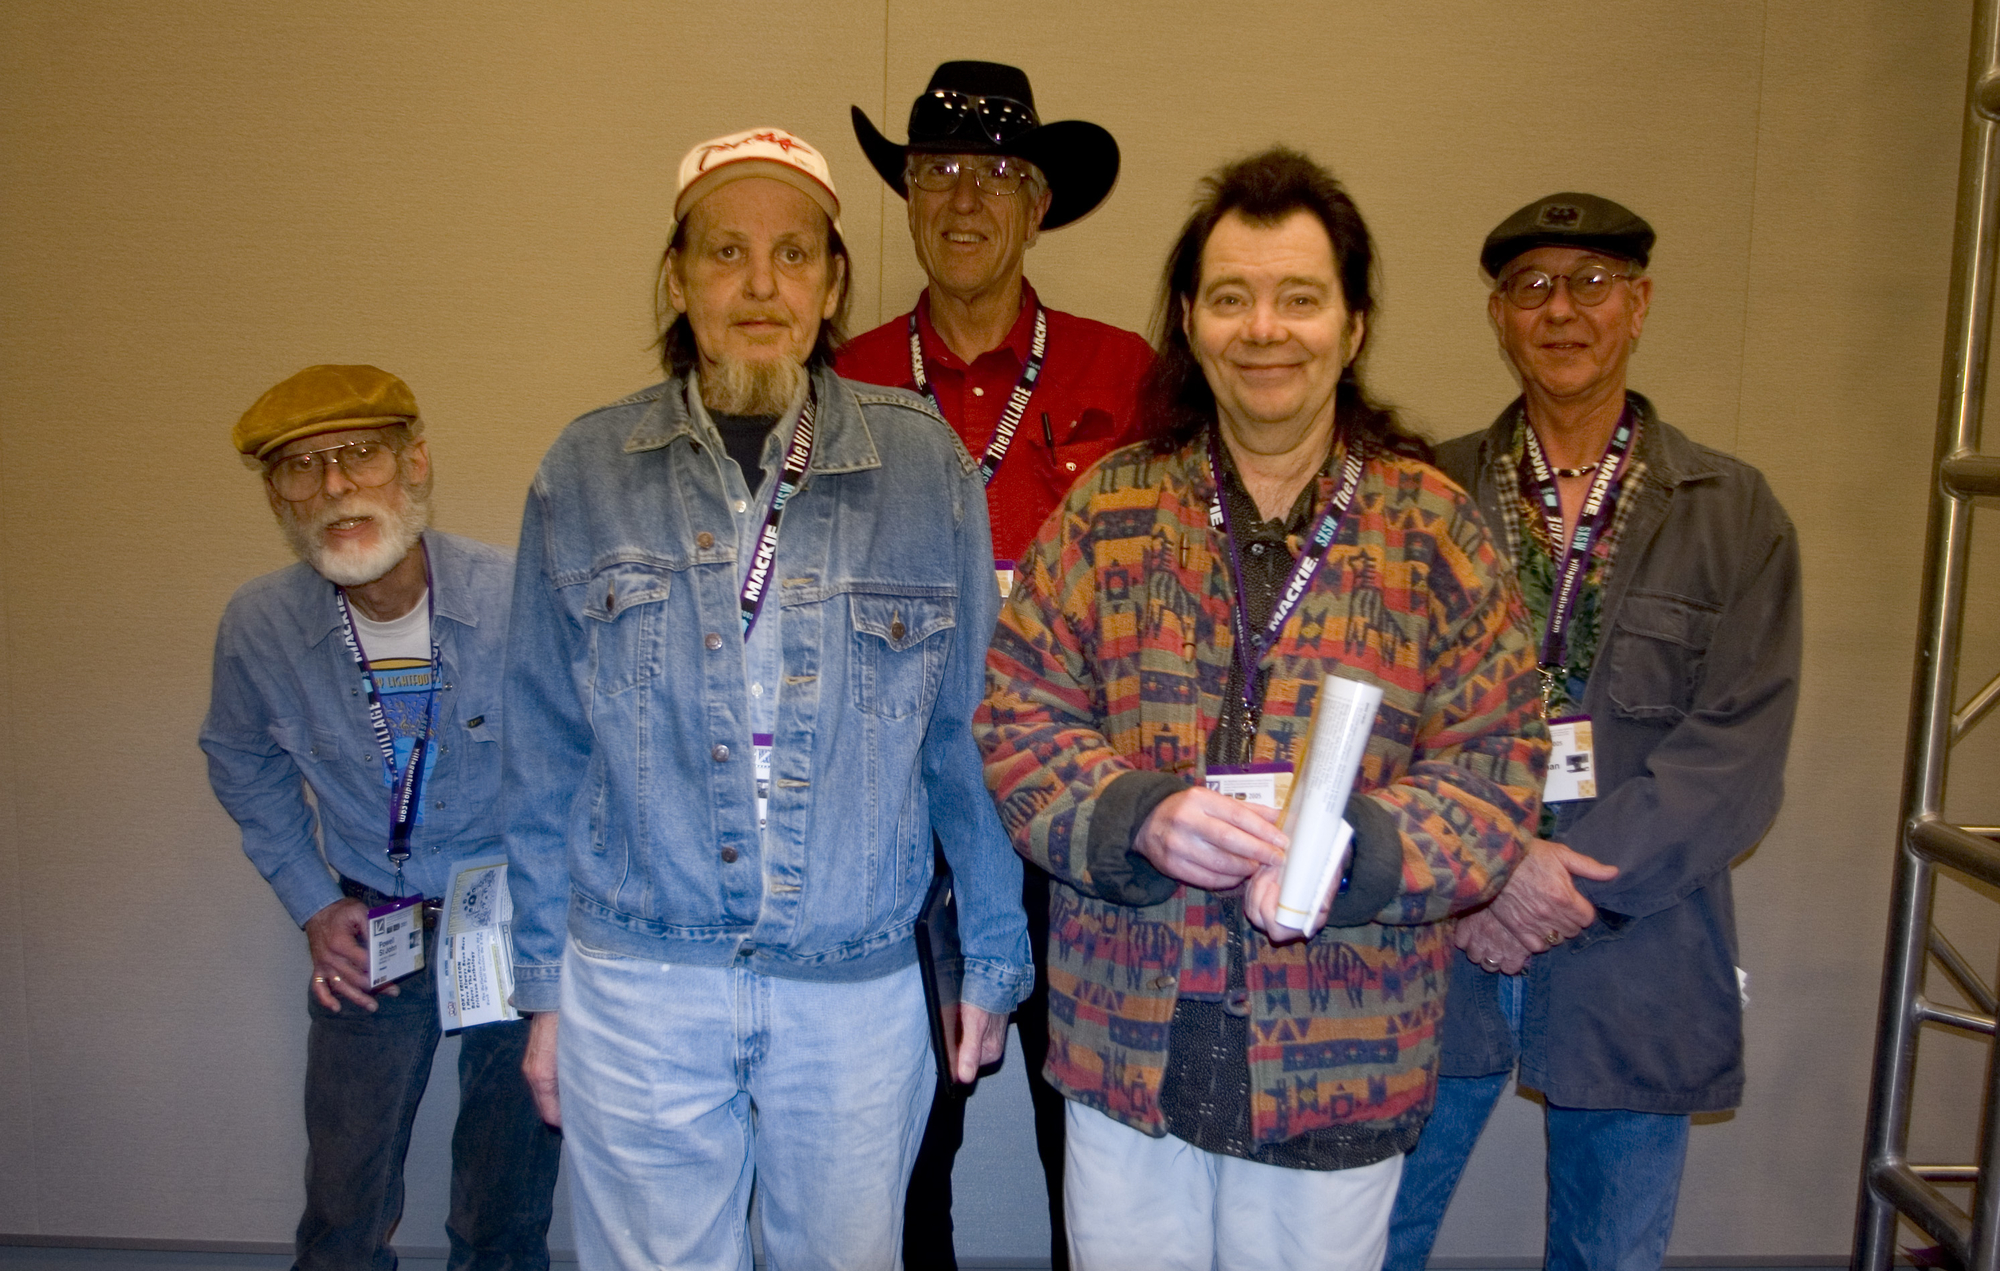 Erickson and his band, the 13th Floor Elevators